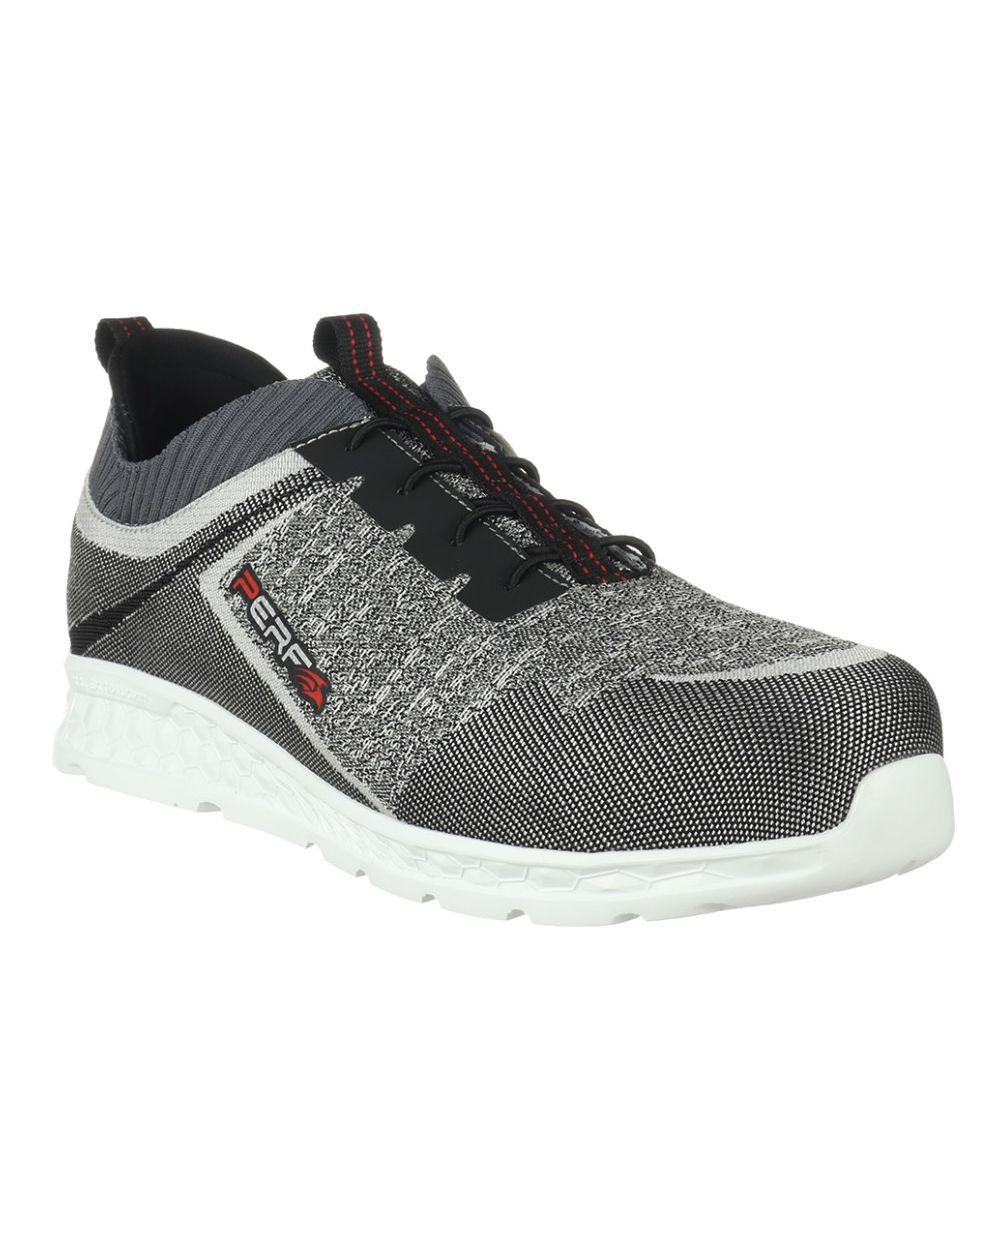 Blade 006 Lightweight Trainer